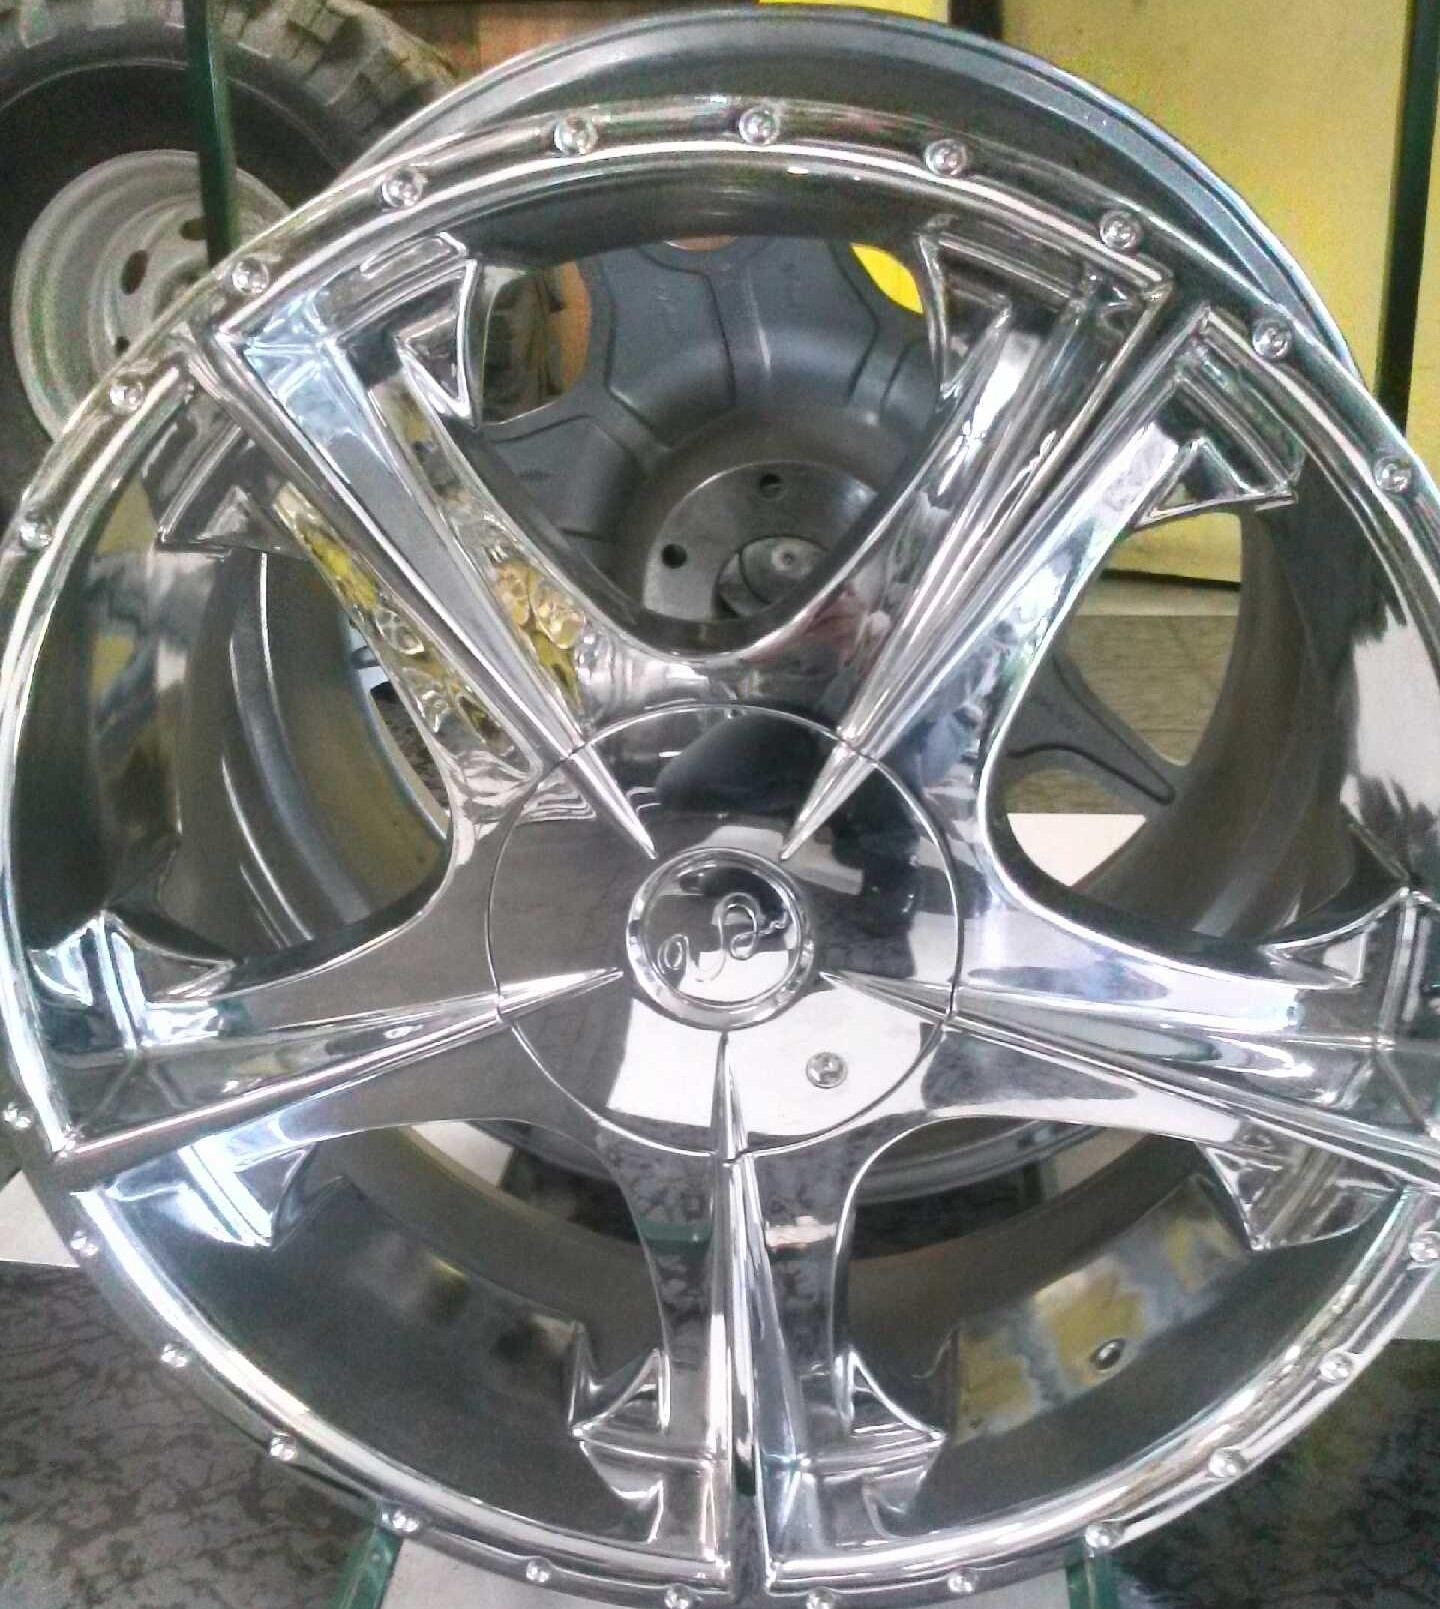 22 Chrome wheel from U2 Bolt Pattern 6x139  6x114 All four wheels are on sale for 799 We offe